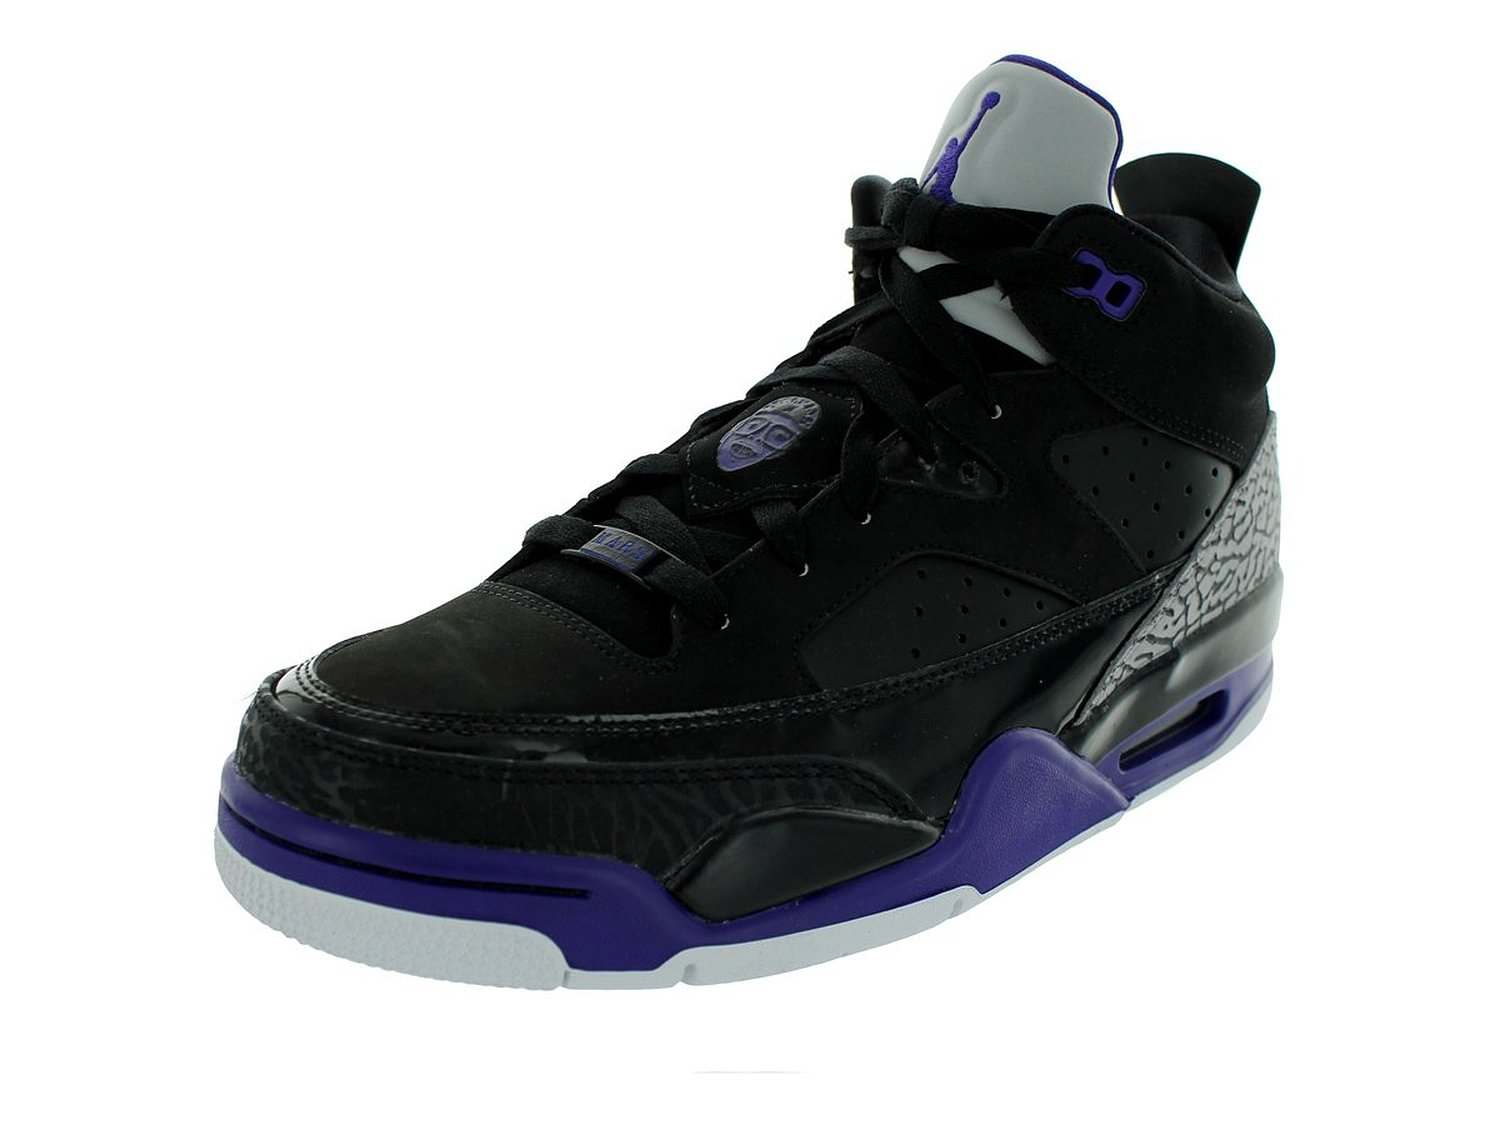 new product 482ce 3db96 Get Quotations · Nike Air Jordan Son Of Low Mens Basketball Shoes 580603-008